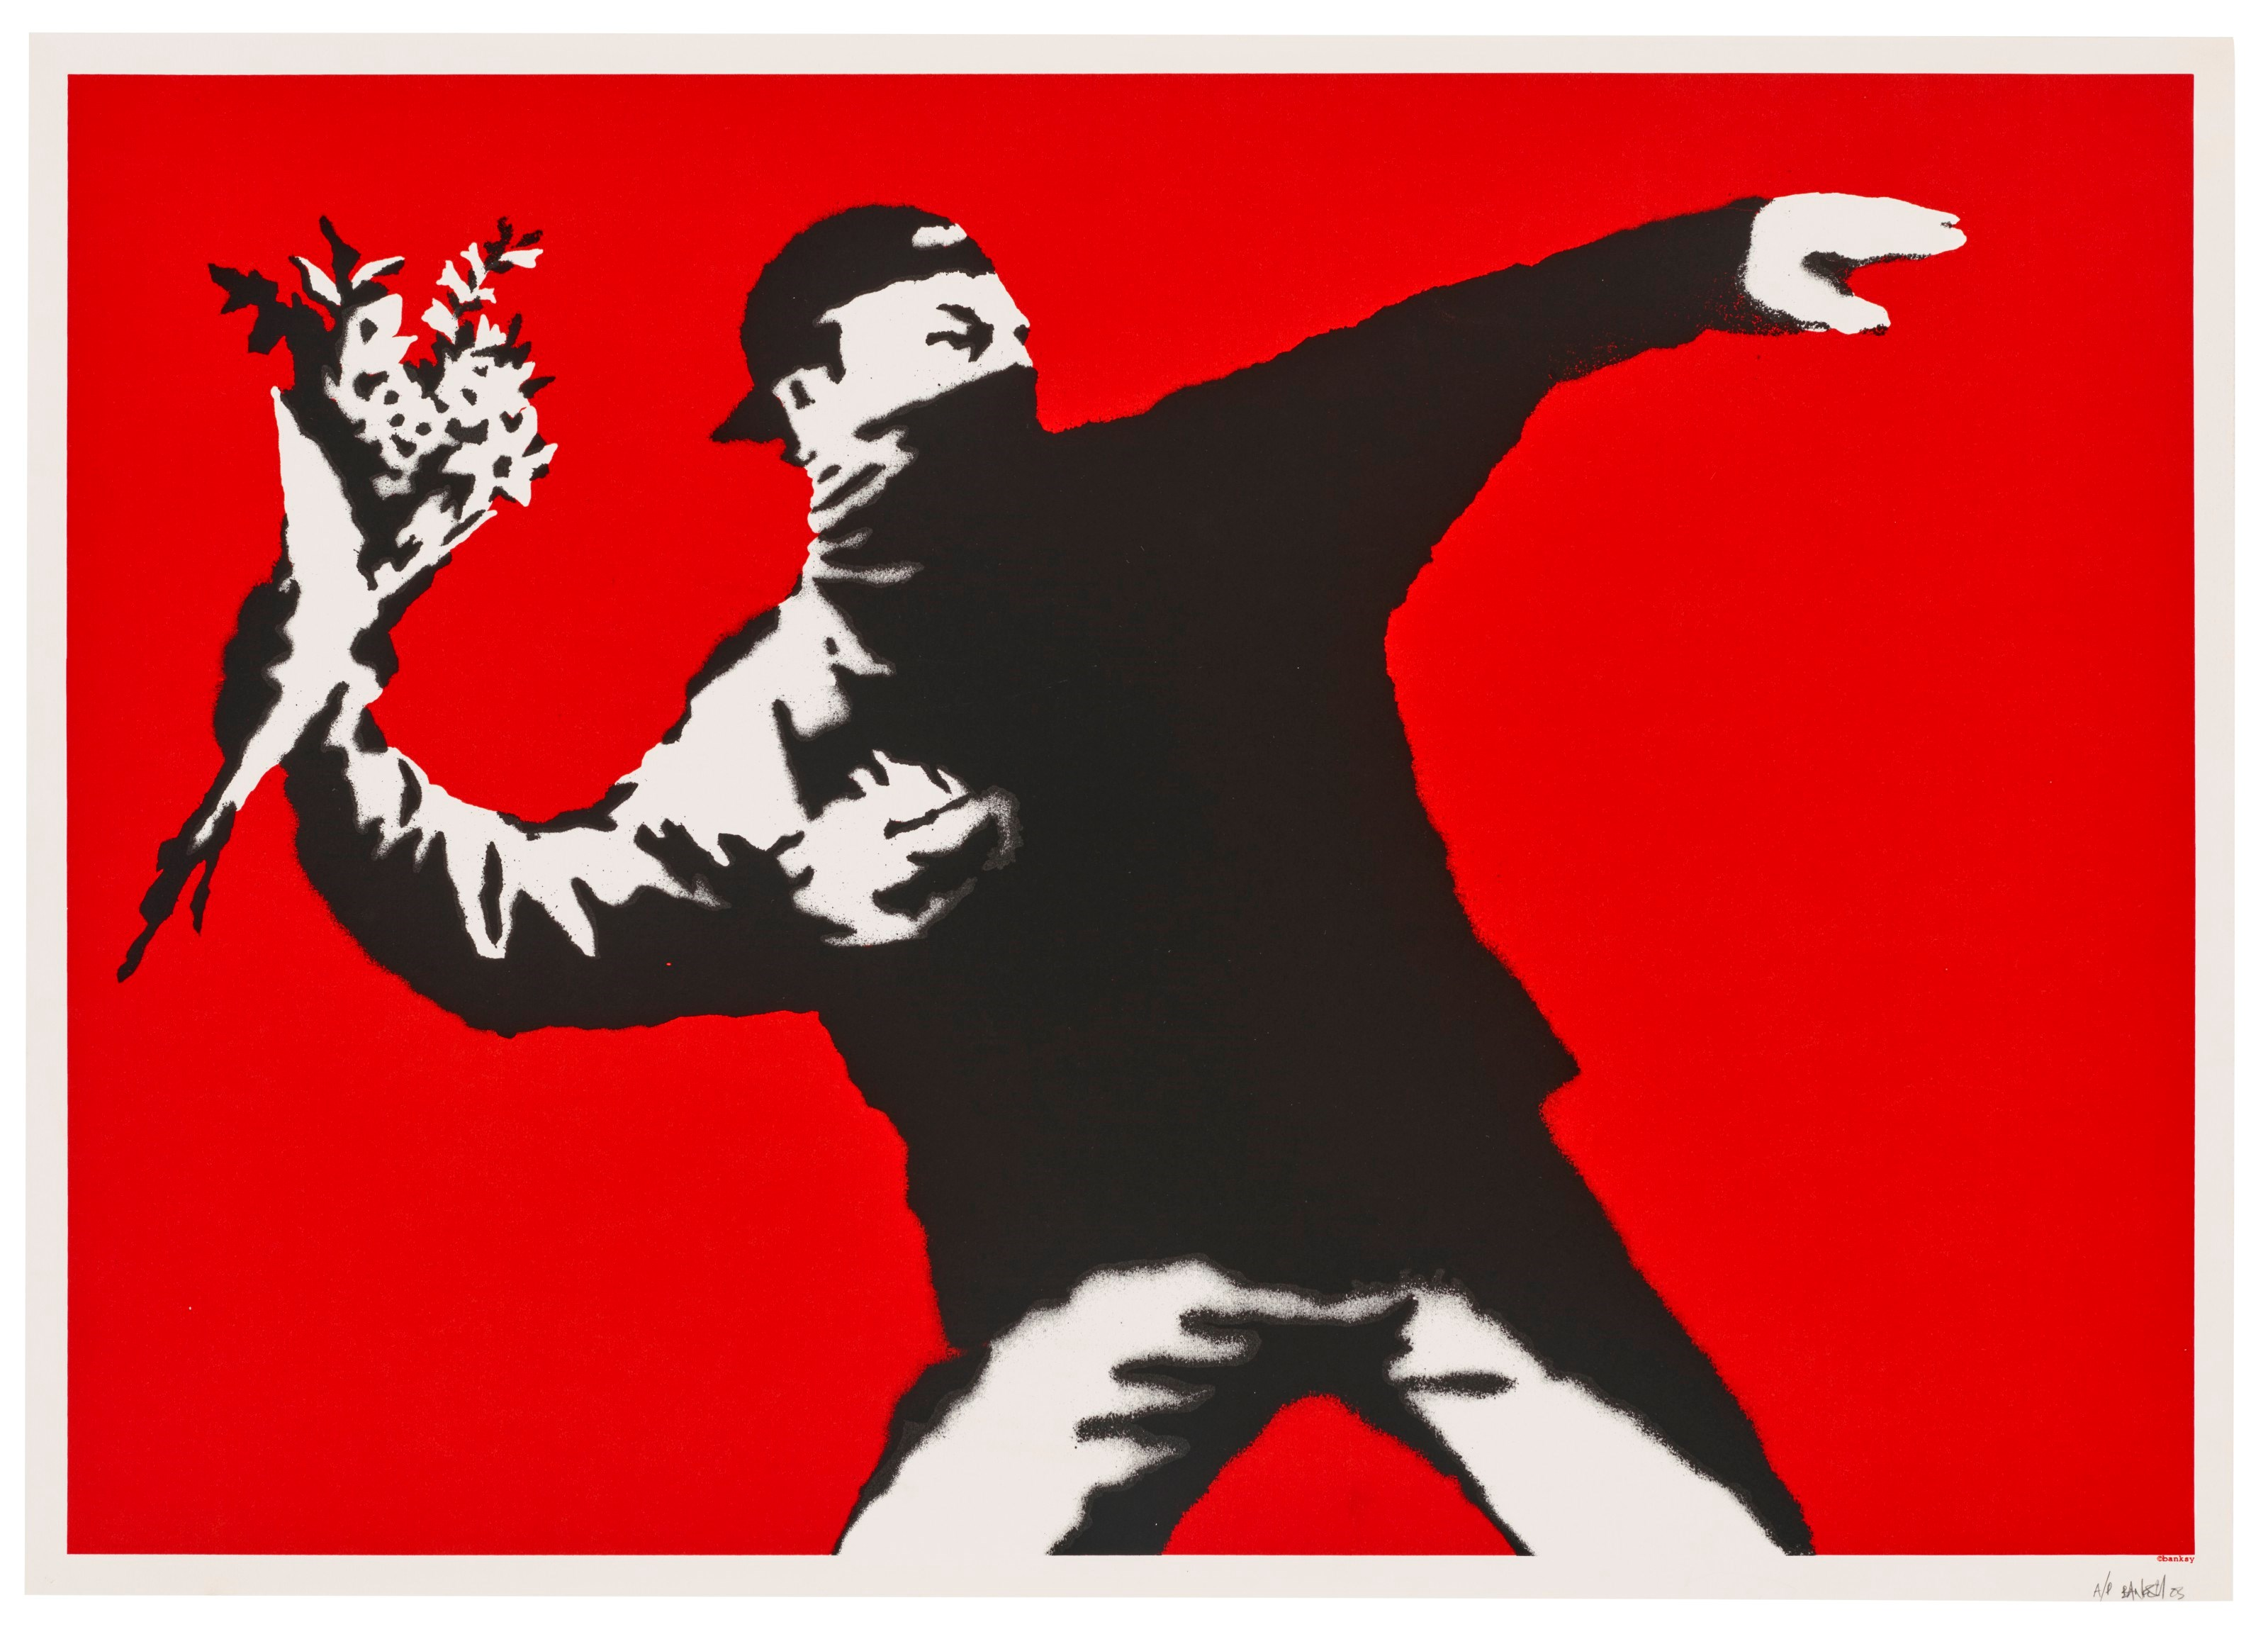 Banksy, Love Is in the Air, 2003. Screenprint in colours. Sheet 495 x 696  mm. Estimate £200,000-300,000. Offered inBanksy I can't believe you morons actually buy this sht, 9-23 September 2021, Online